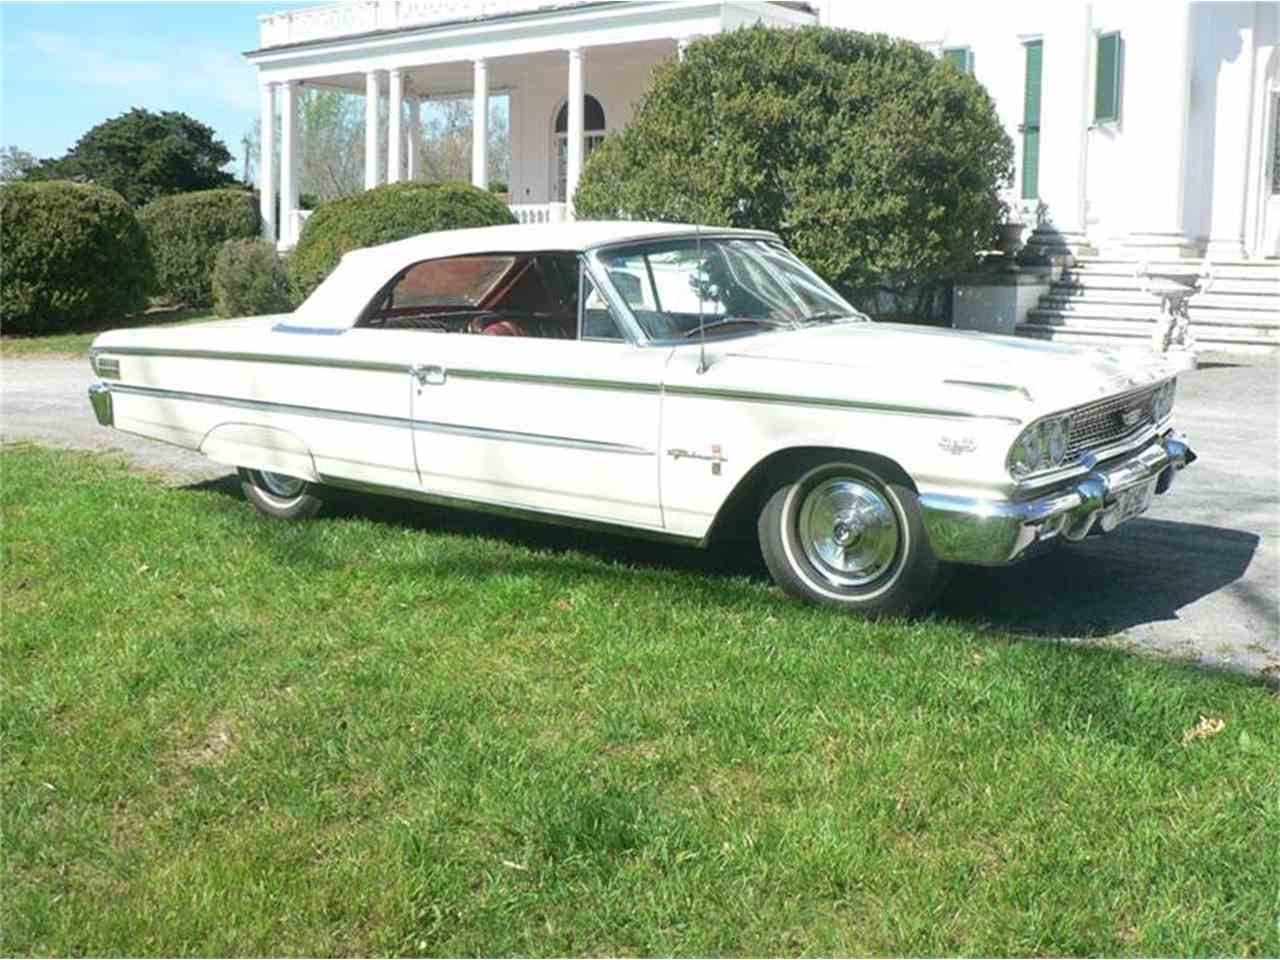 Large Picture of 1963 Ford Galaxie 500 XL located in Virginia - $57,500.00 Offered by Cville Classic Cars - JW66